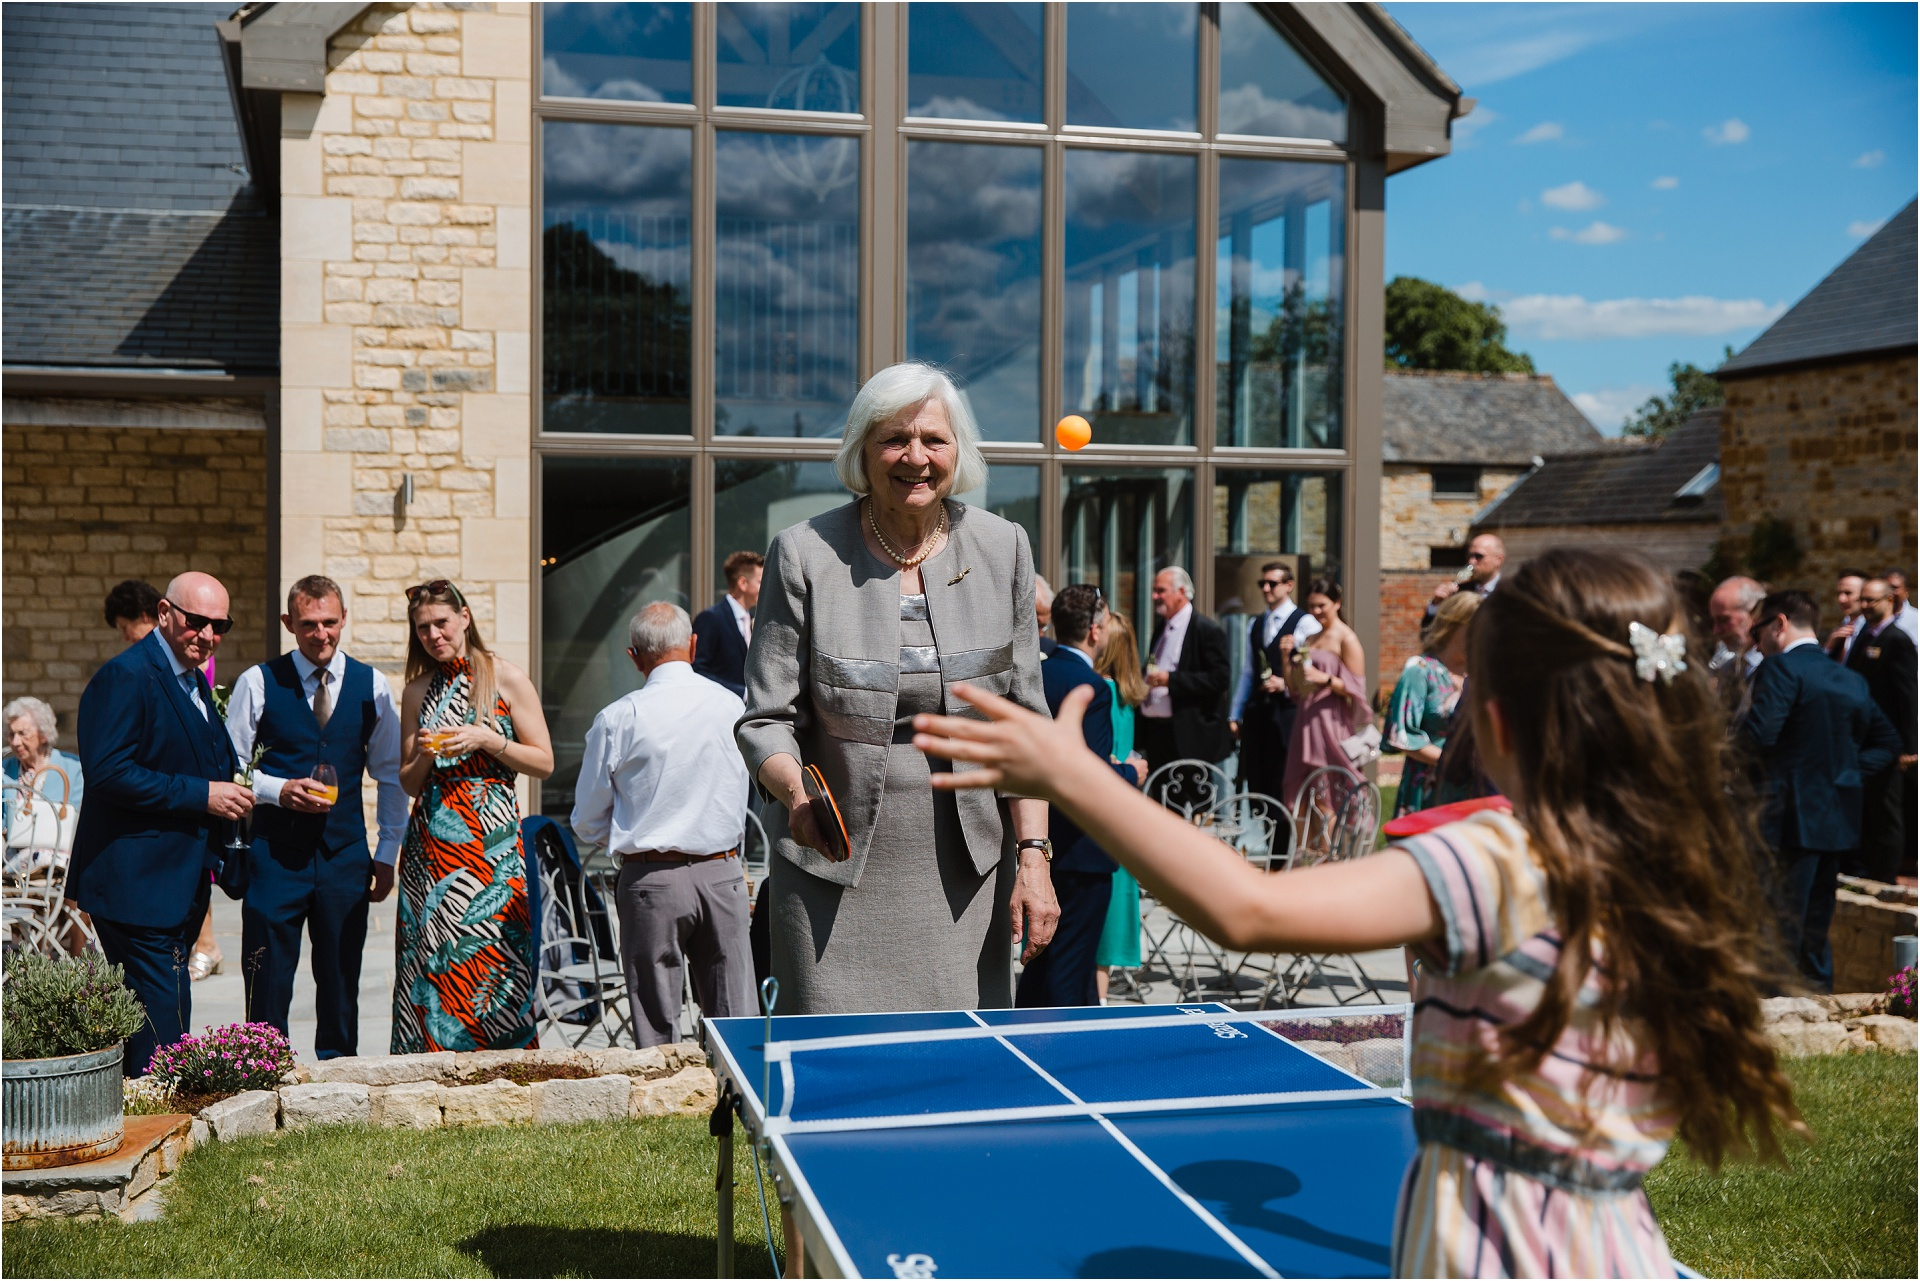 table tennis at Blackwell Grange